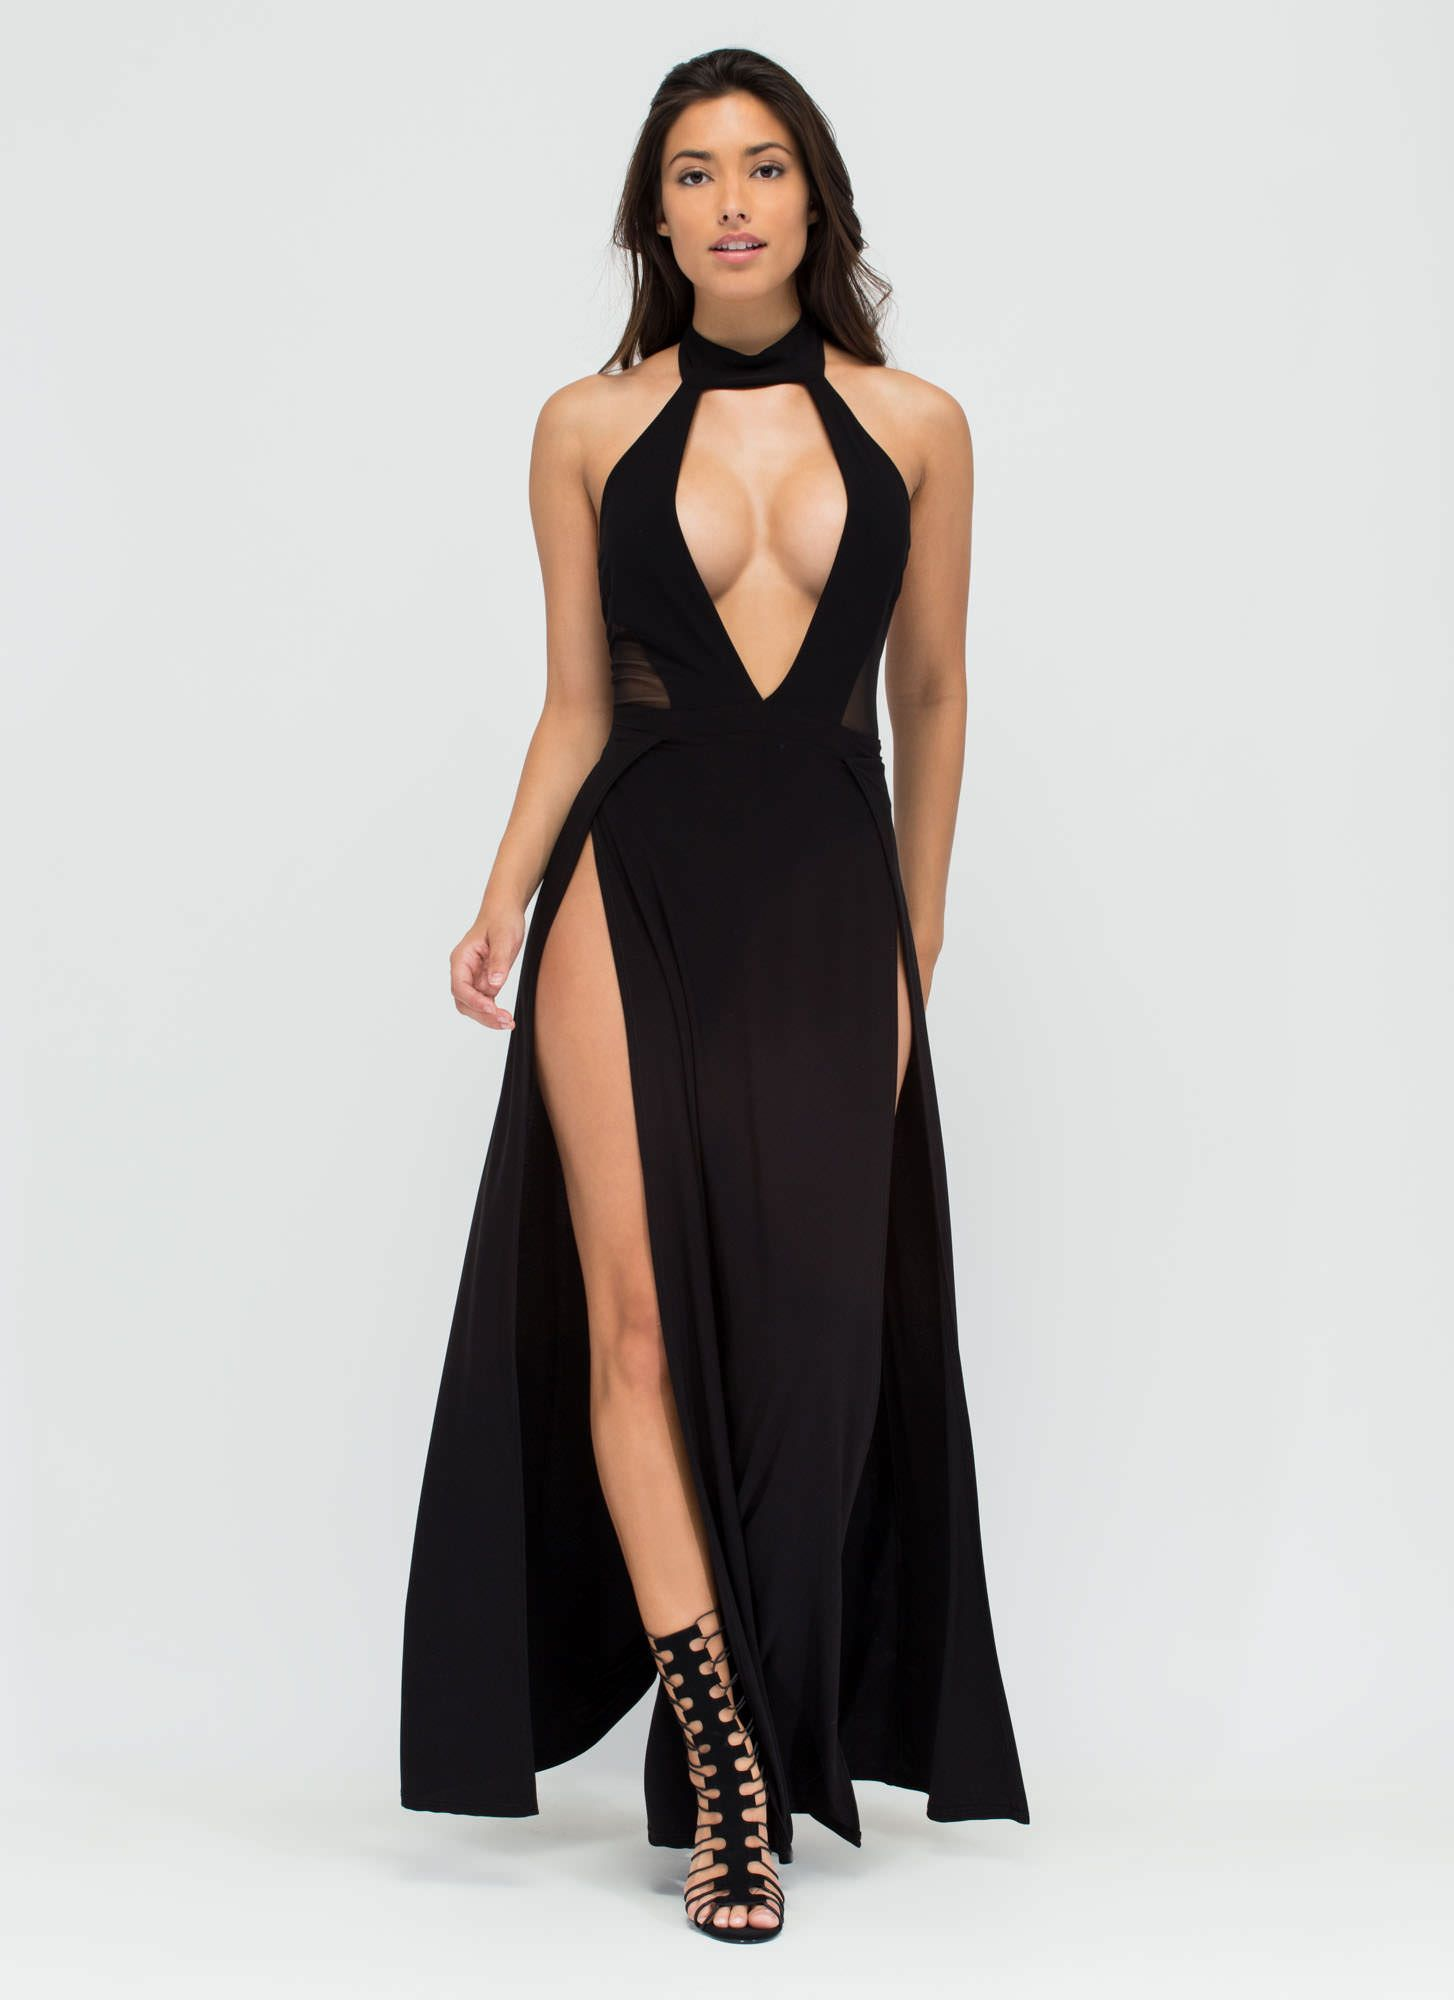 Legs for days doubleslit maxi dress black yellow gojane